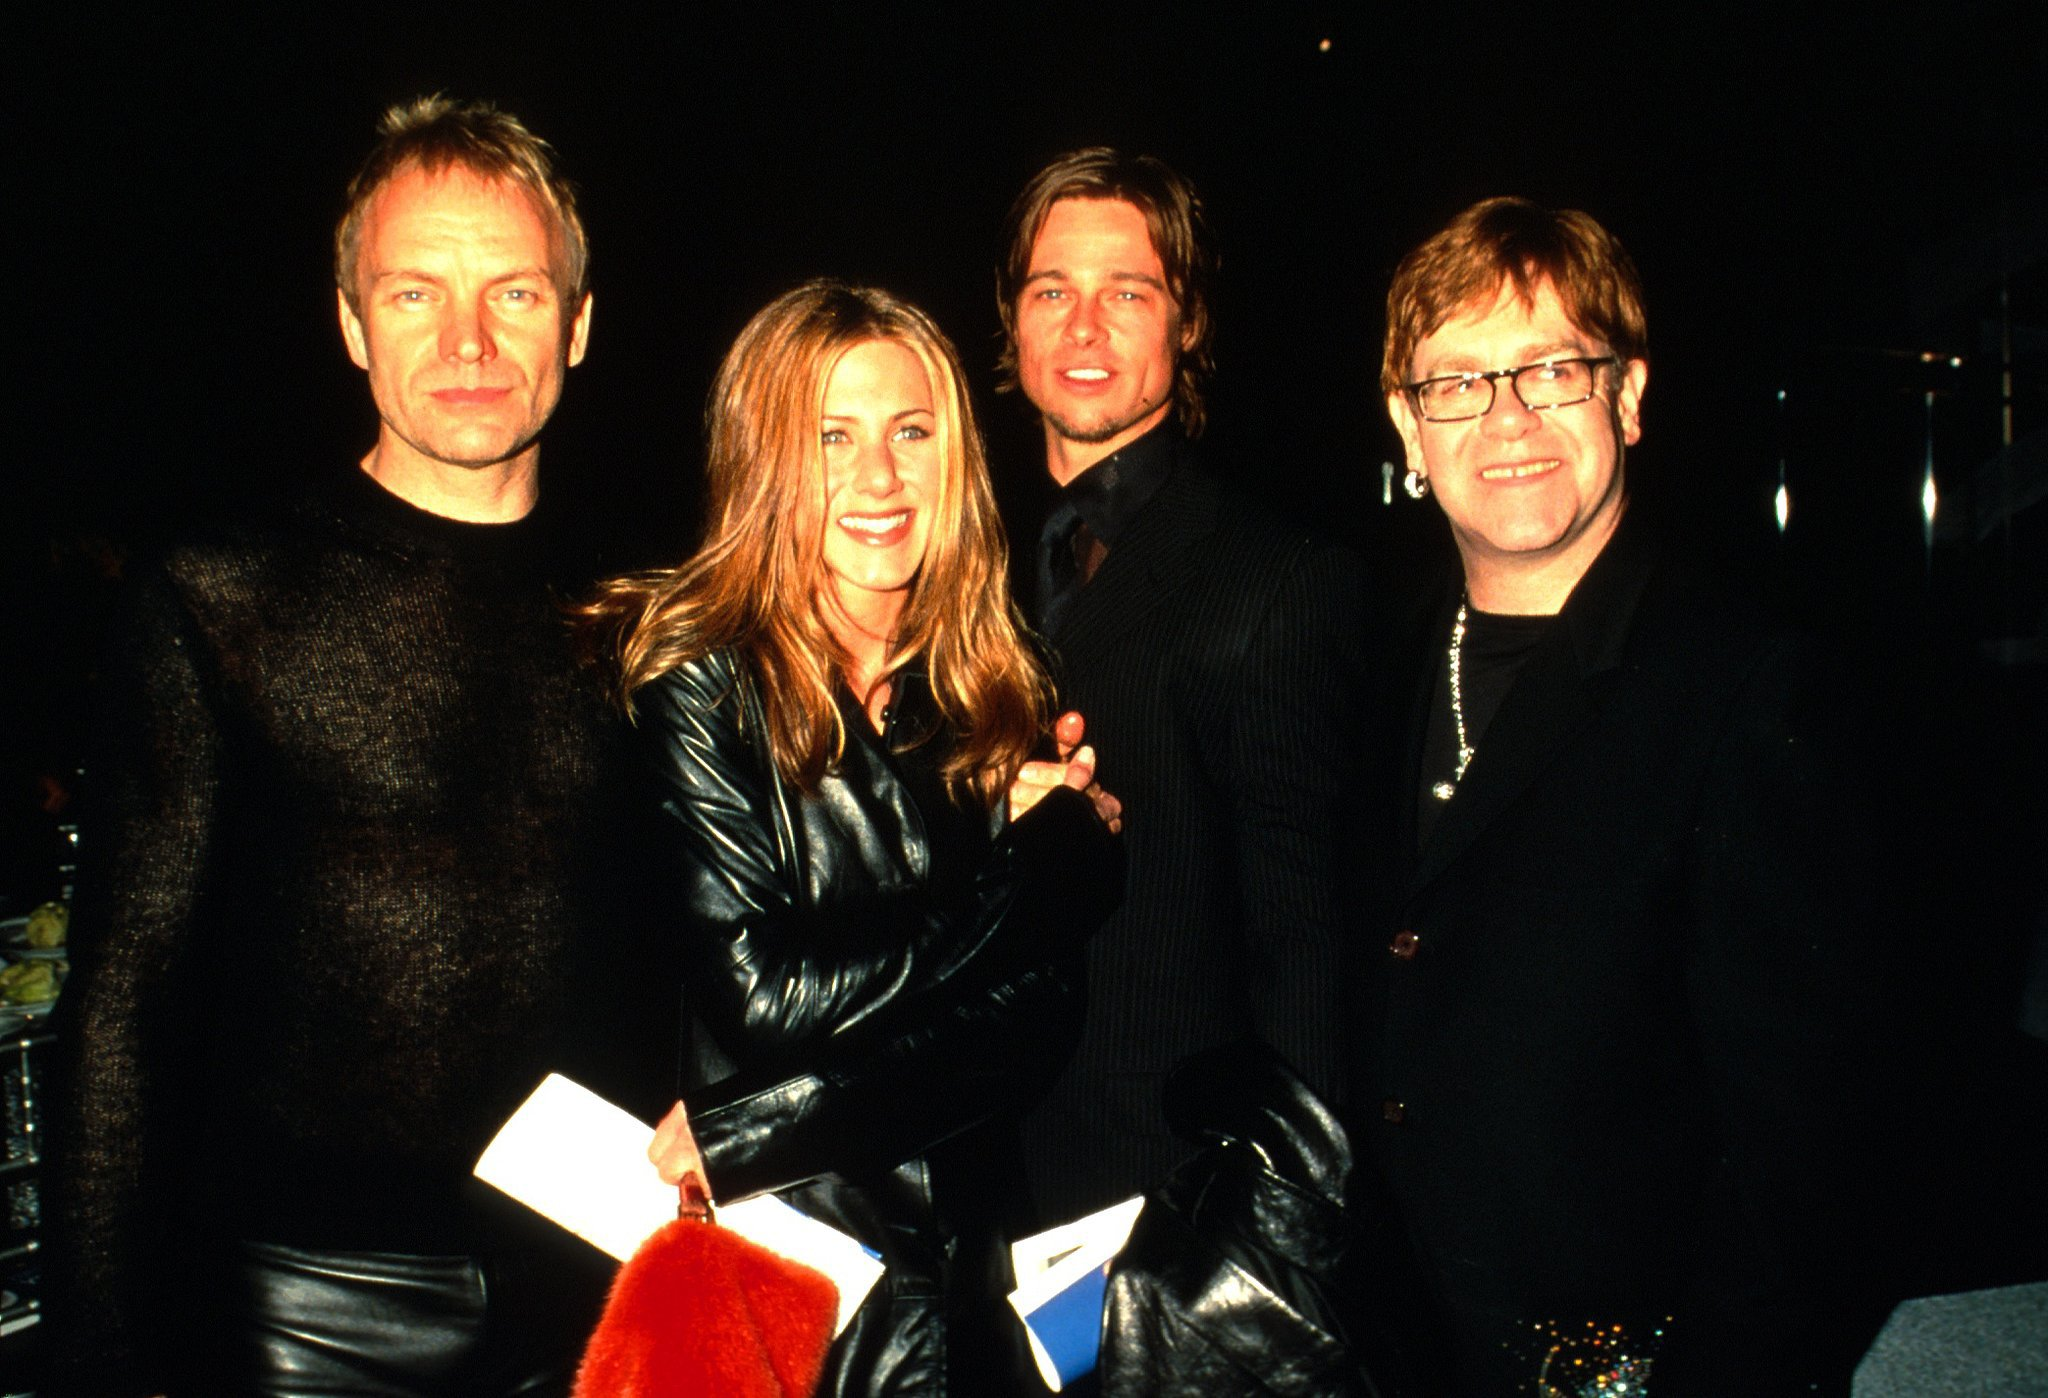 Sting, Jennifer Aniston, and Brad Pitt were there to see Elton John named the 2000 MusiCares Person of the Year by the Grammys.